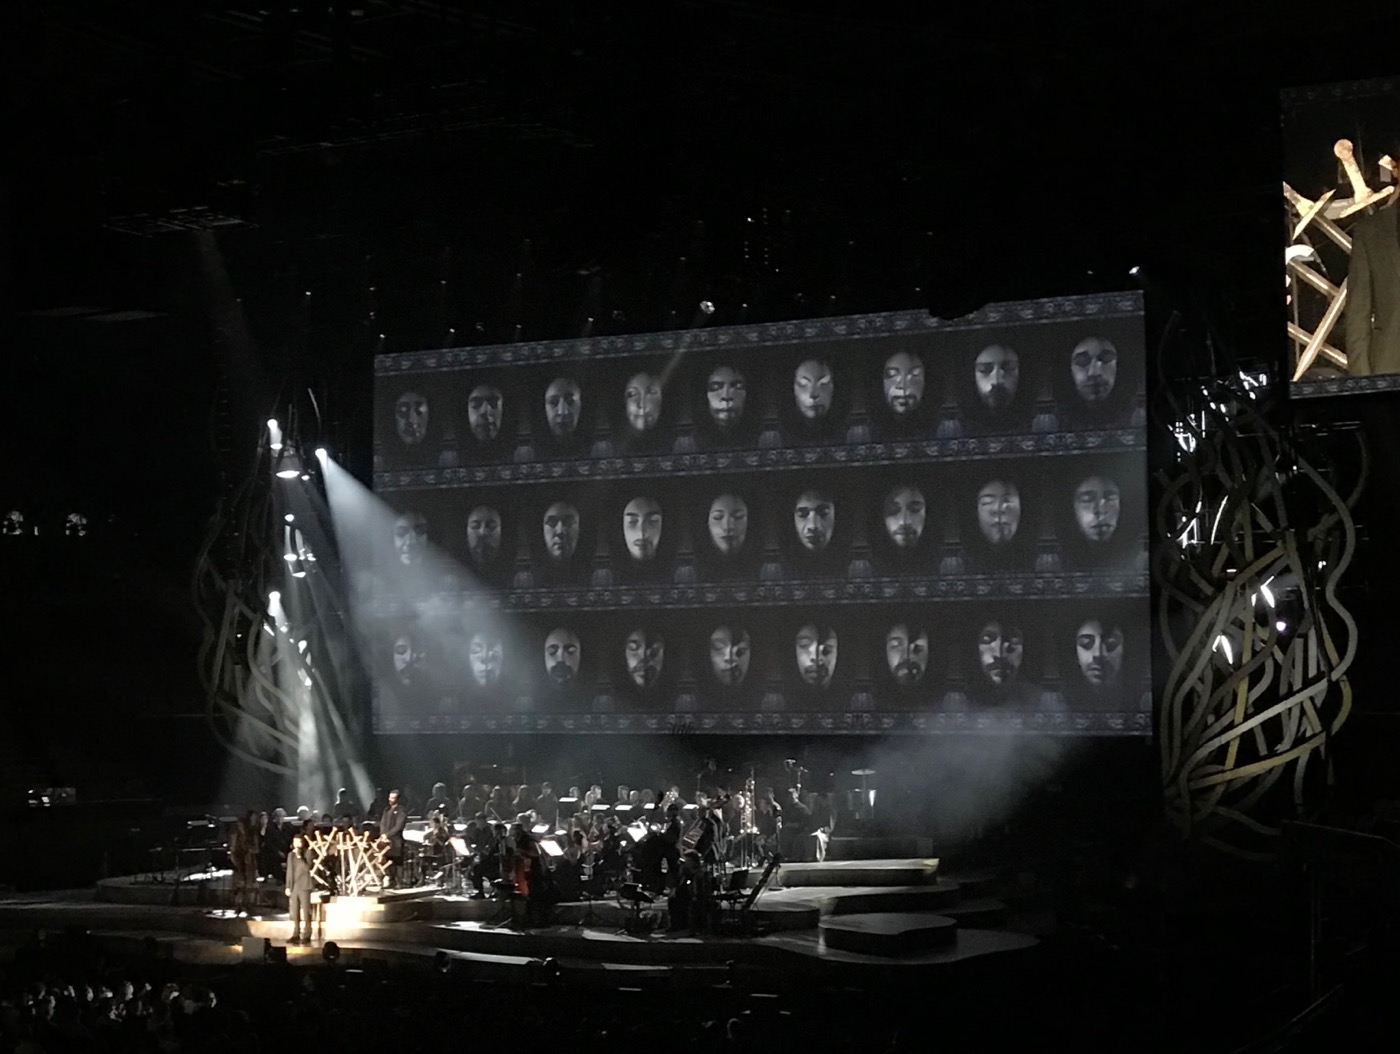 Game of Thrones Live Concert Experience: Ramin Djawadi 9/9/18. Photo by Megan Ranger (@MagenRanger). Used with permission.